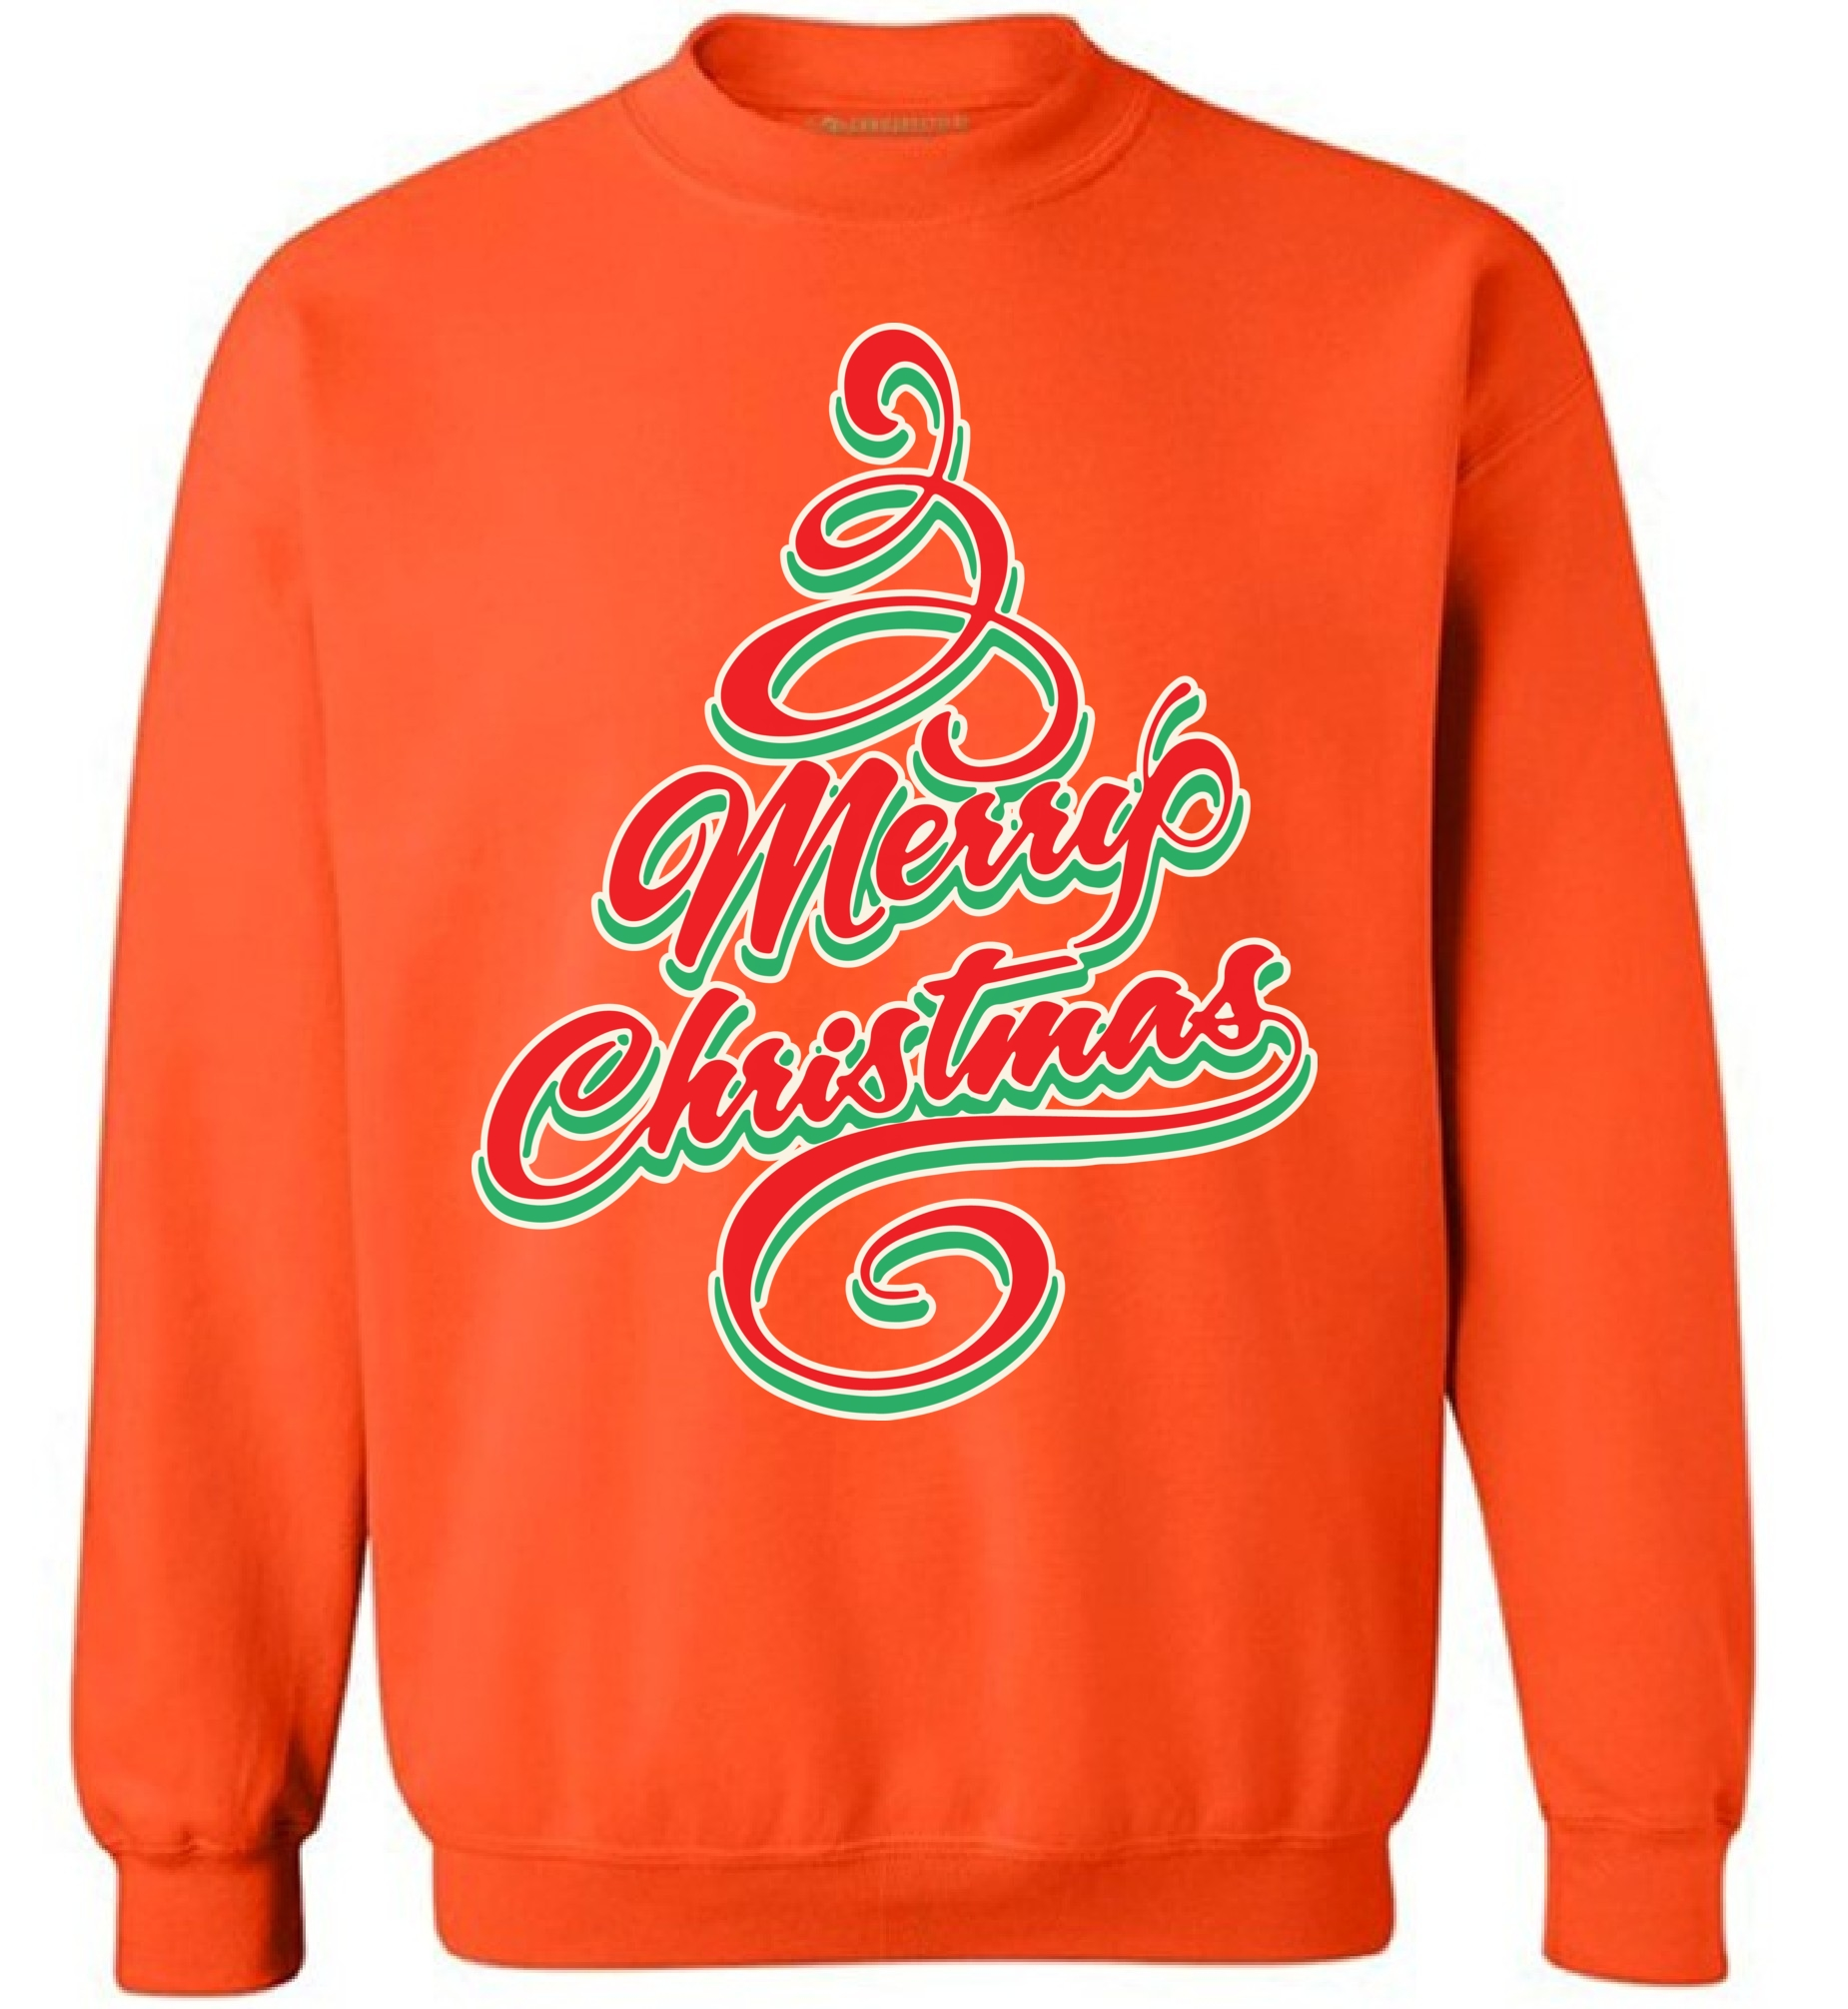 Awkward Styles Merry Christmas Holiday Sweatshirt Christmas Tree Christmas Sweatshirt Funny Christmas Sweater Party Xmas Gifts Christmas Sweatshirt for Men for Women Xmas Tree Holiday Sweater